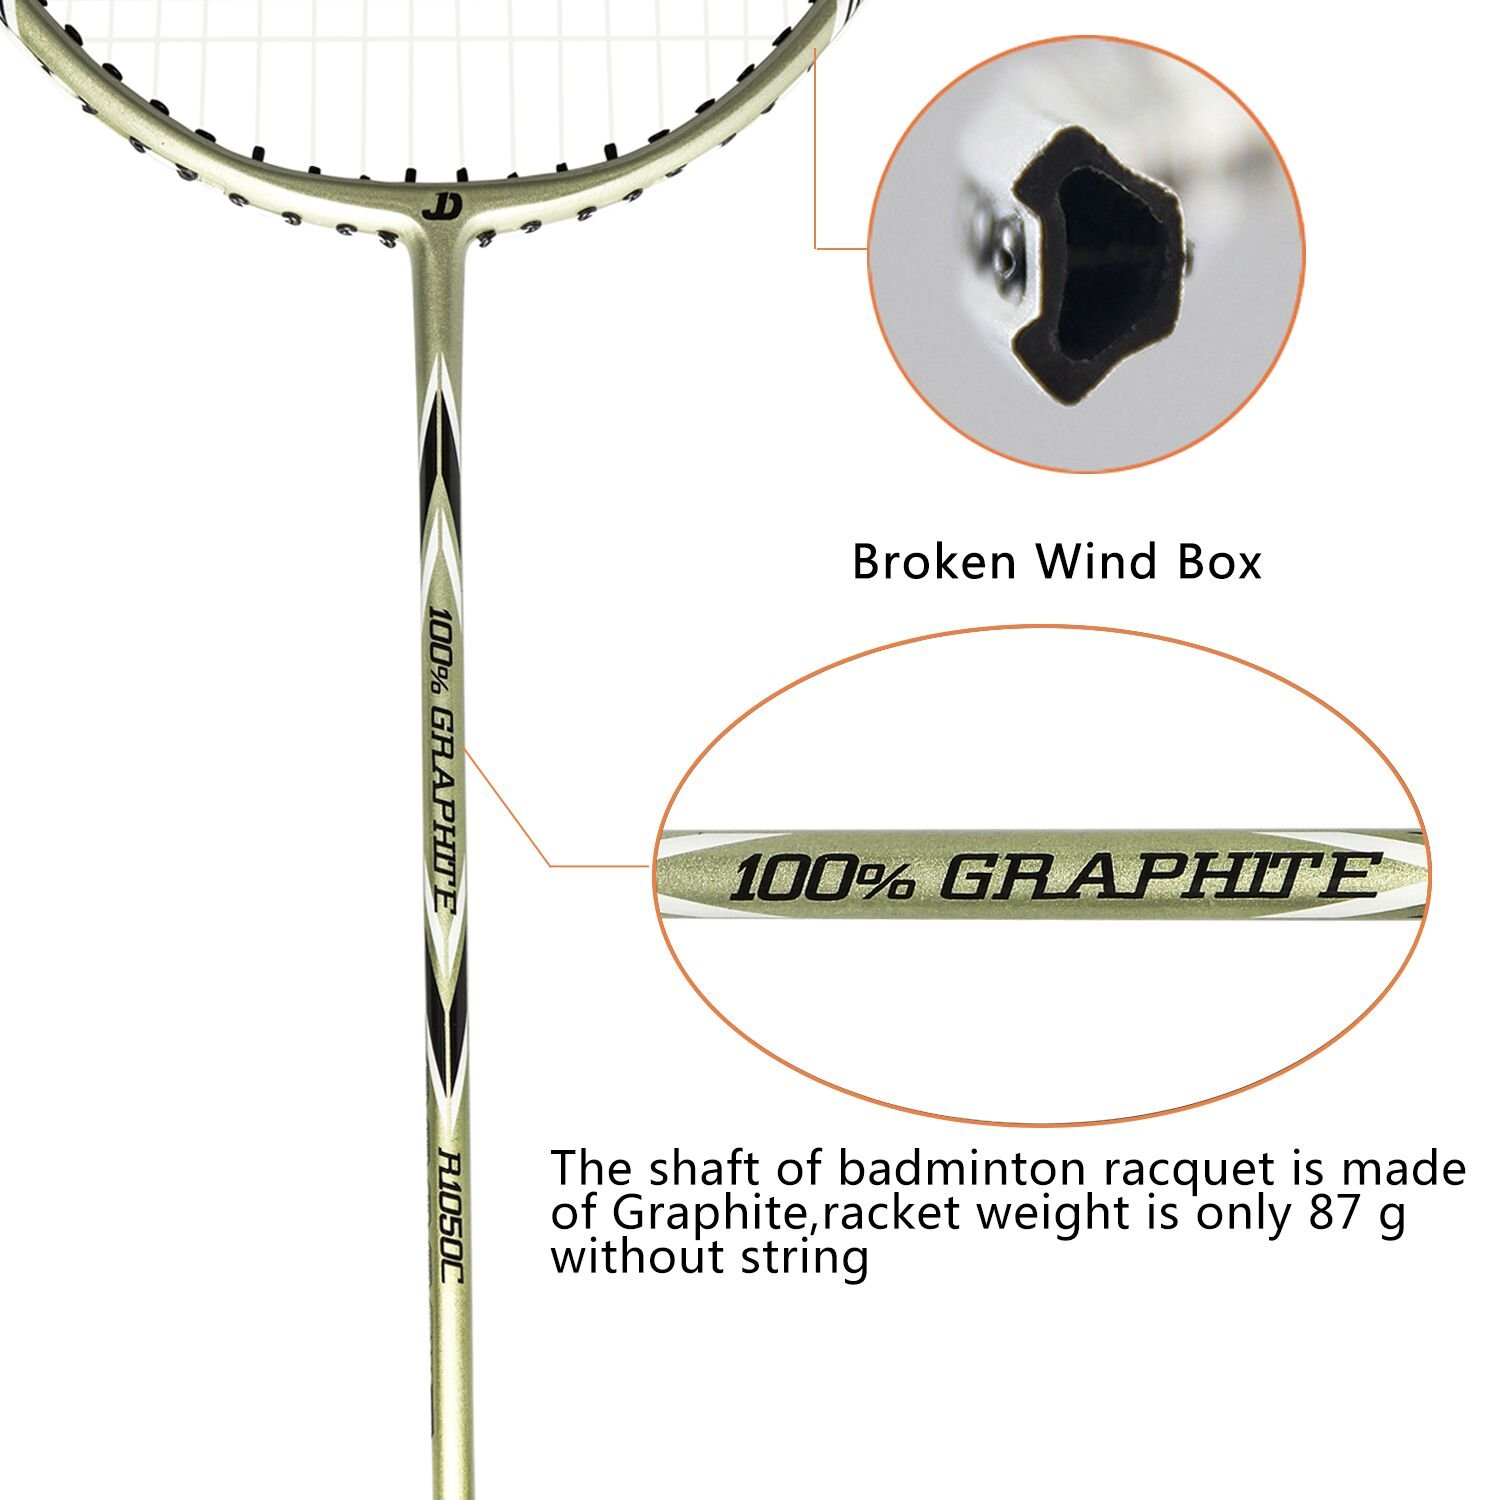 Amateurs and Beginners Very Light Ancees Badminton Rackets Set Including 1 Badminton Bag // 2 Rackets Ideal for Trainers Graphite Badminton Racquet 87+//-2 Gram Set